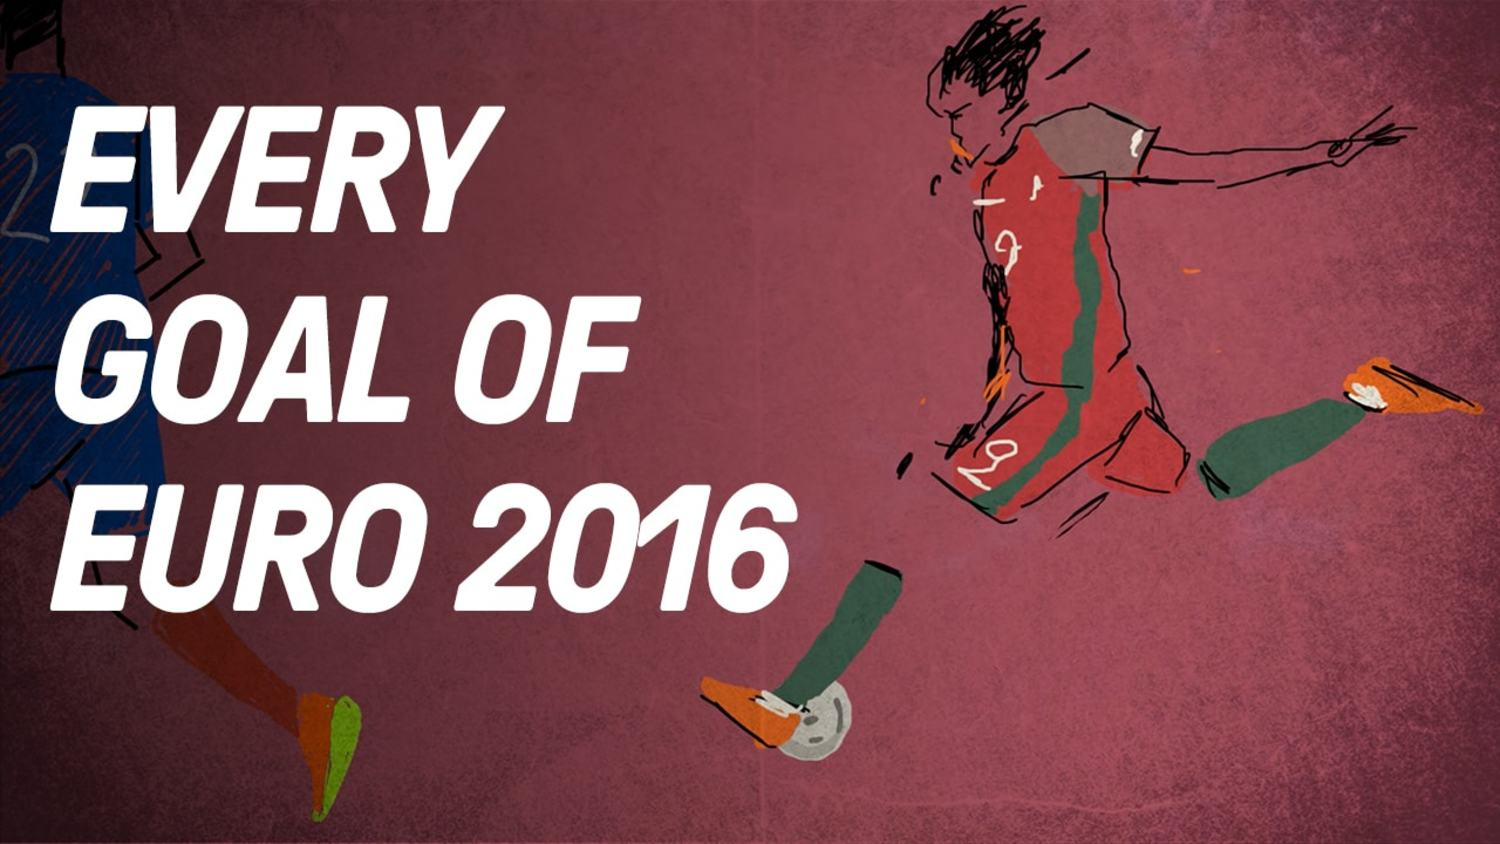 Every Goal Of Euro 2016 Animated